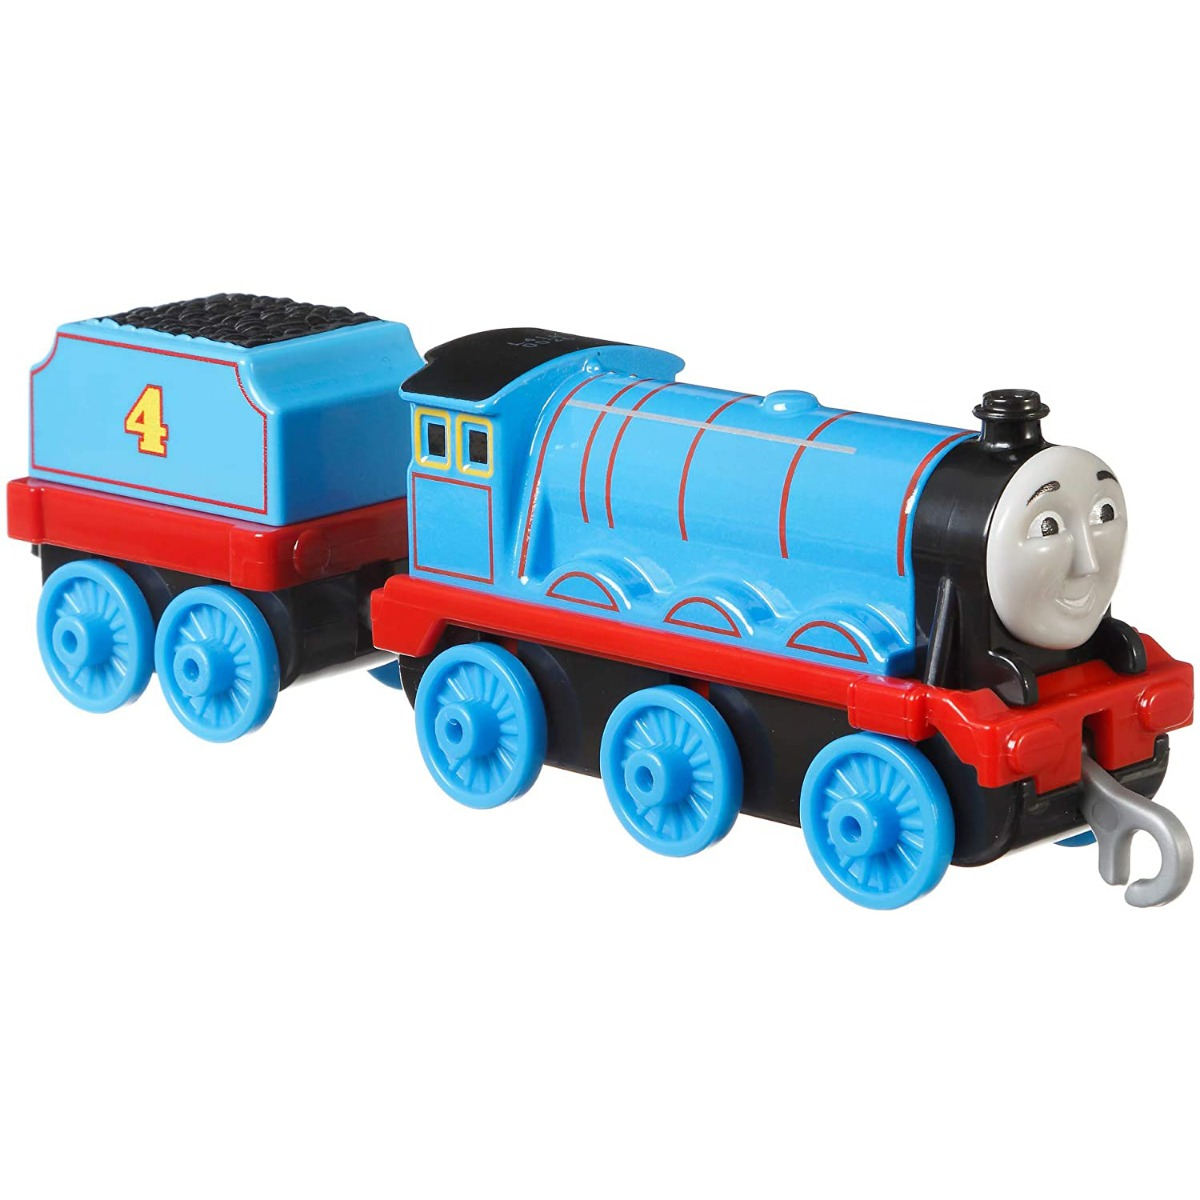 Locomotiva cu vagon Thomas and Friends, Gordon FXX22